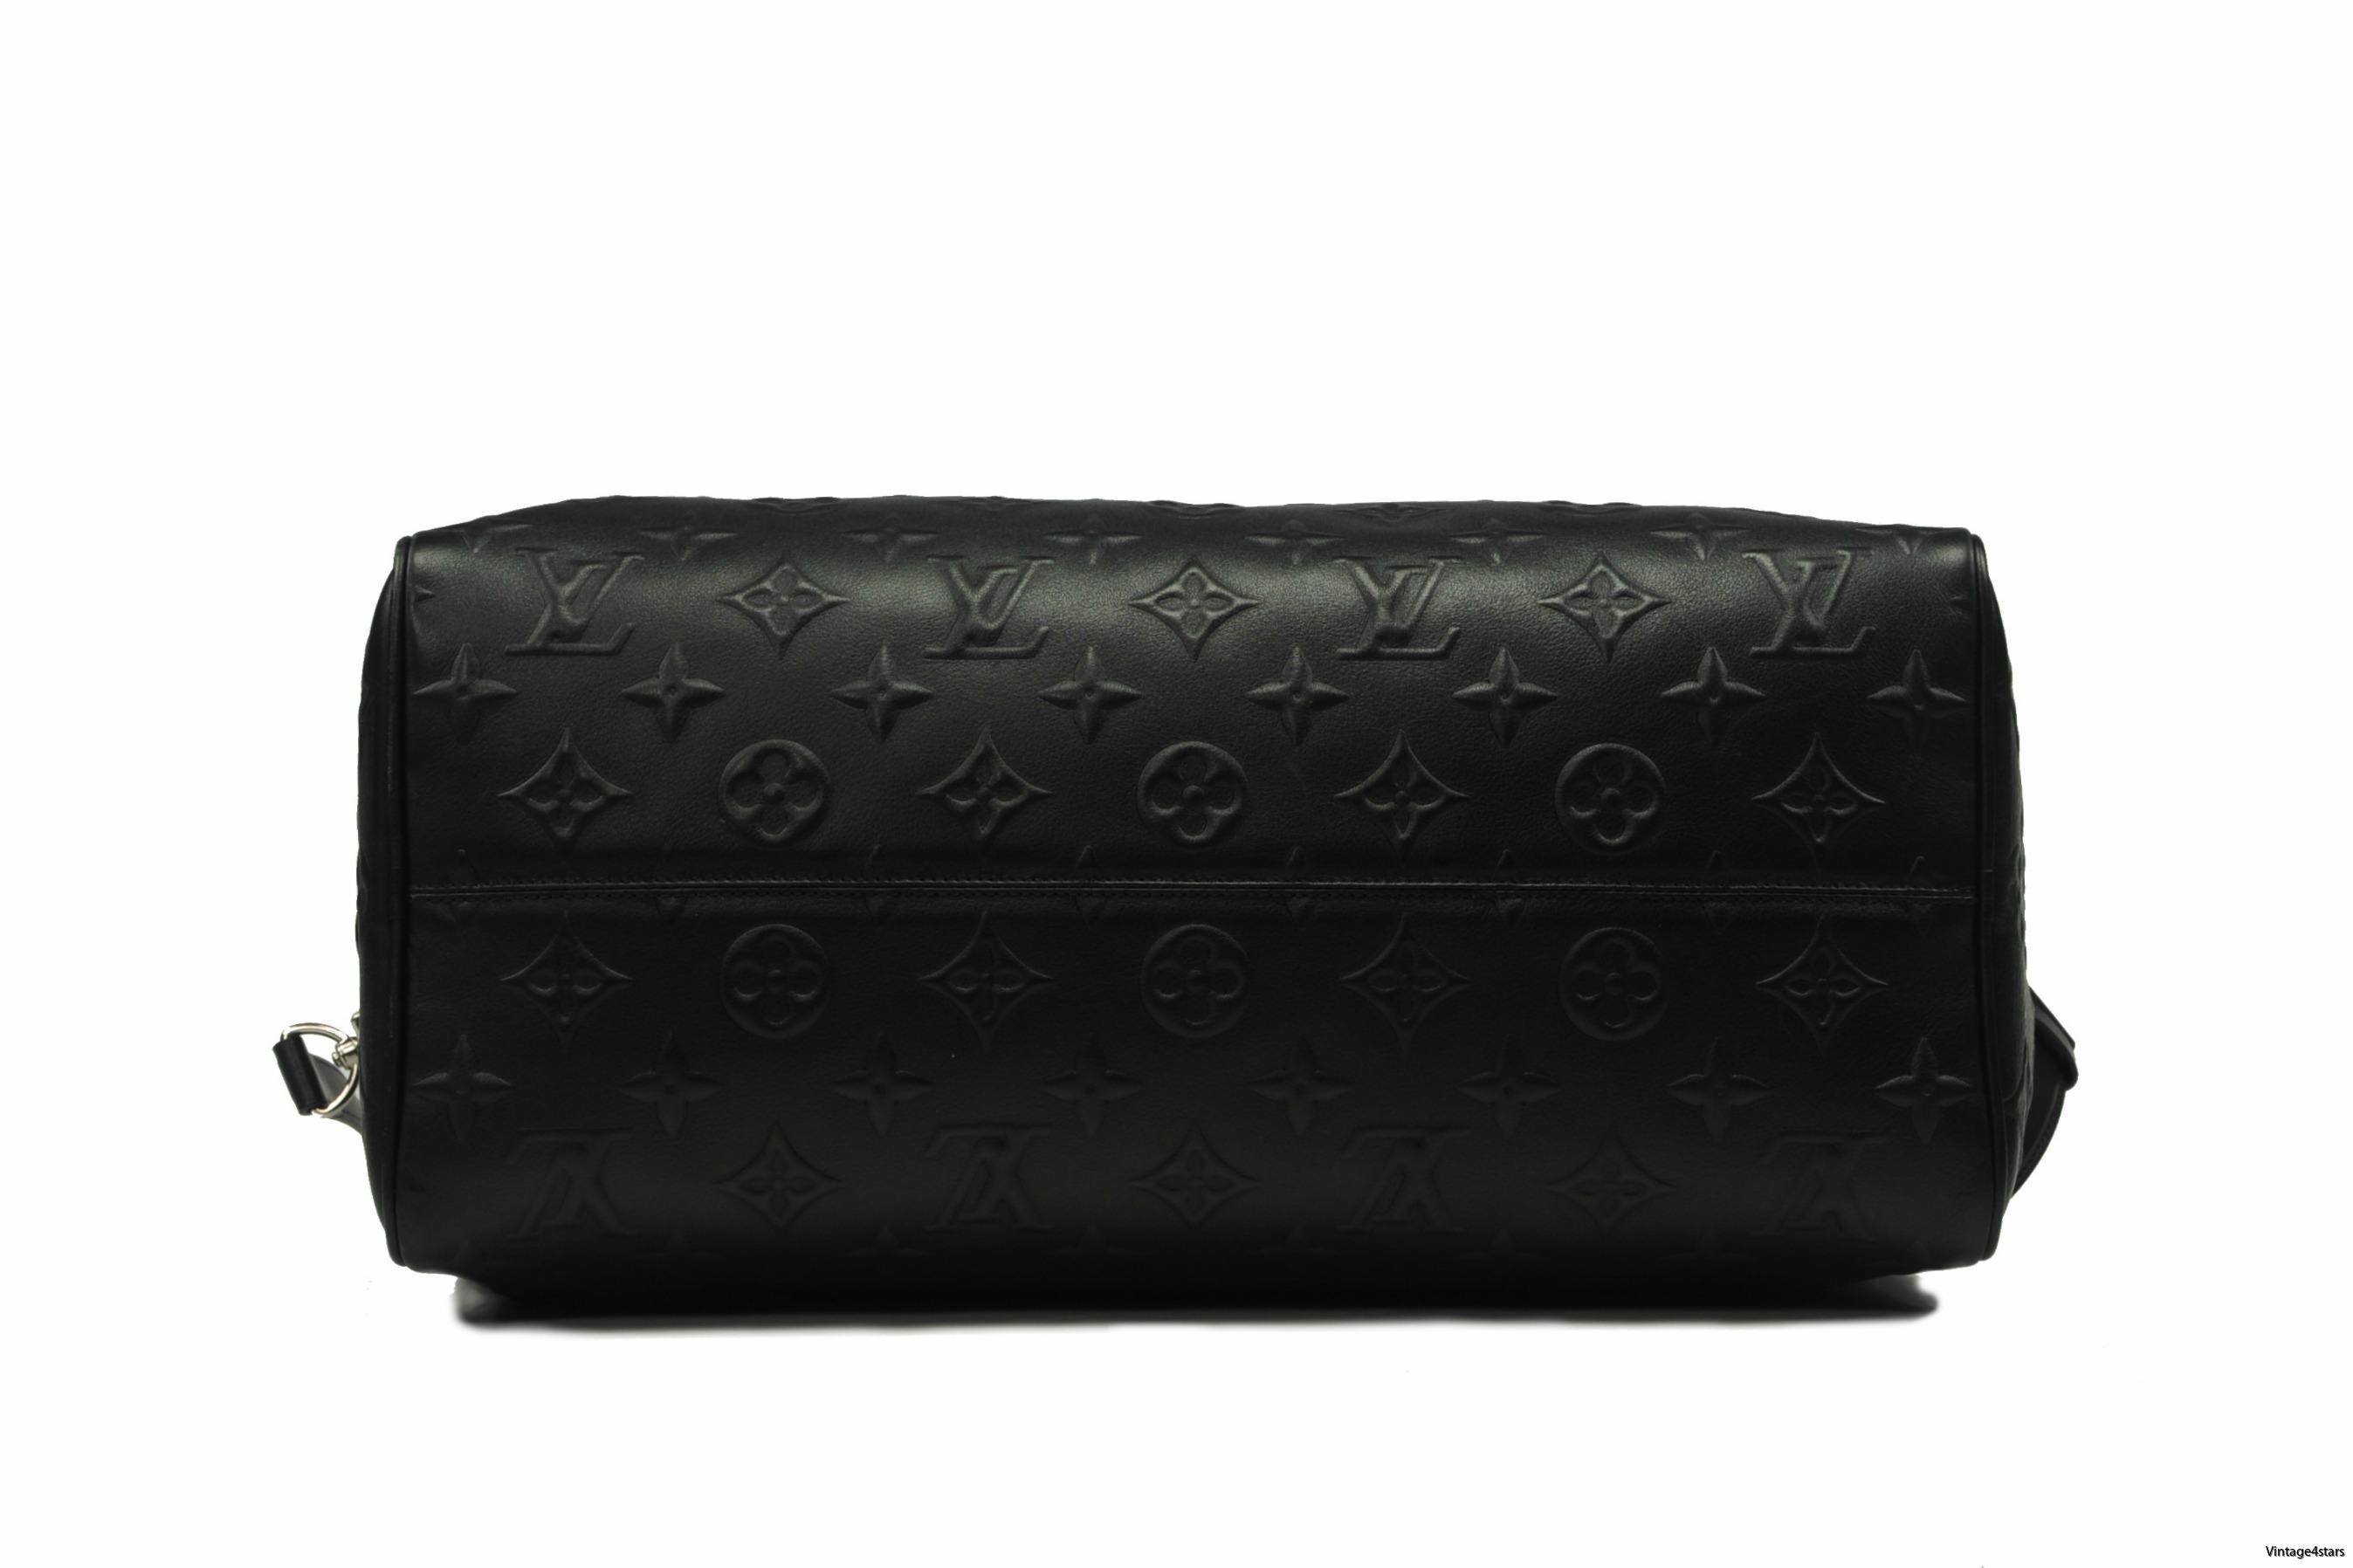 Louis Vuitton Keepall 45 Revelation 6